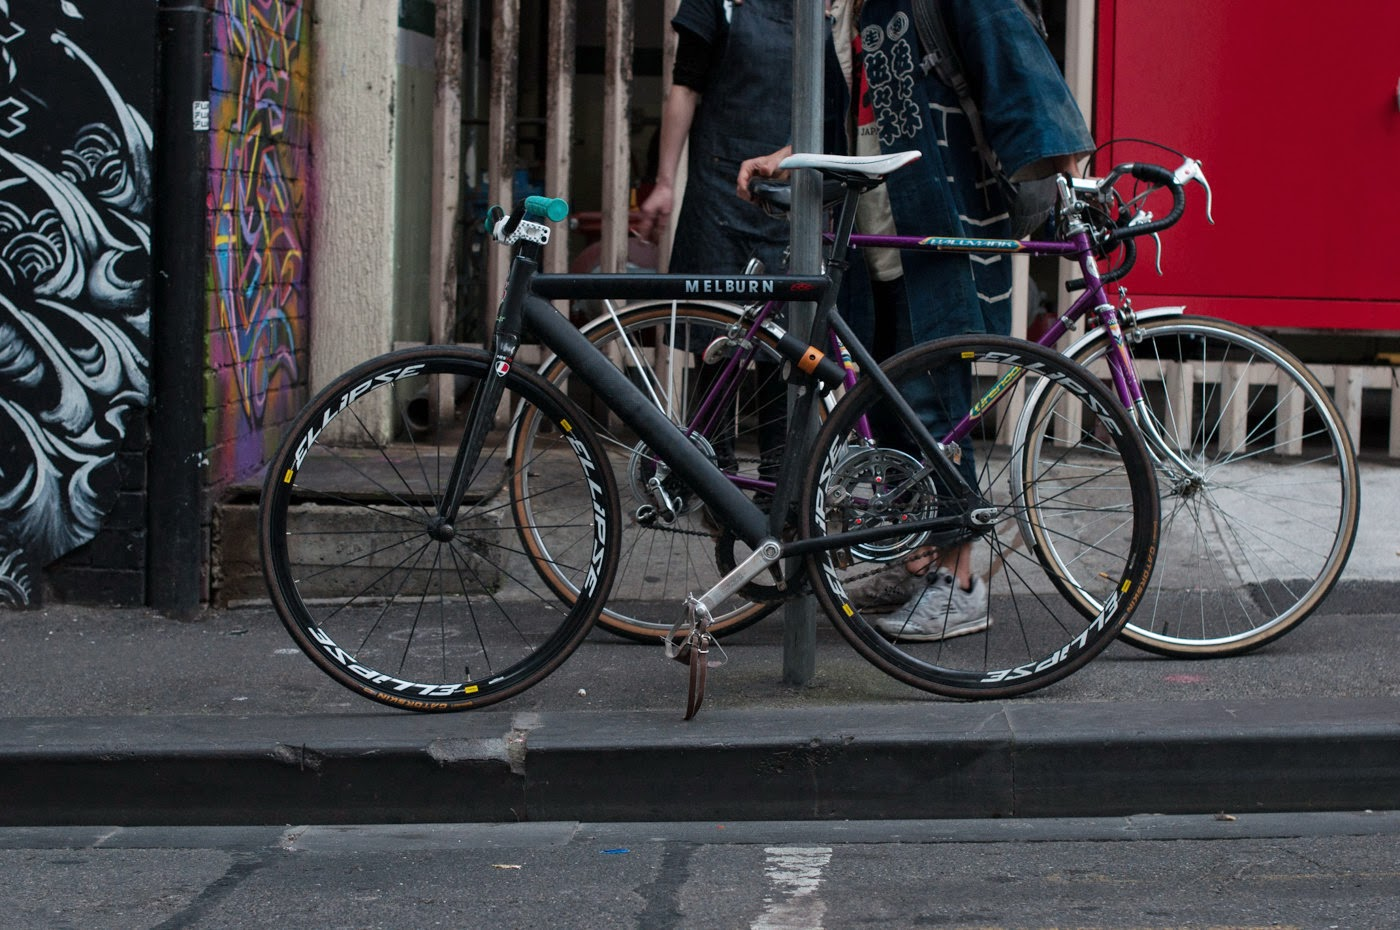 Custom, bespoke, frame, fixed speed, fixie, bike, bicycle, tim macauley, the light monkey collective, the biketorialist, Melbourne, Australia, mavic, fsa